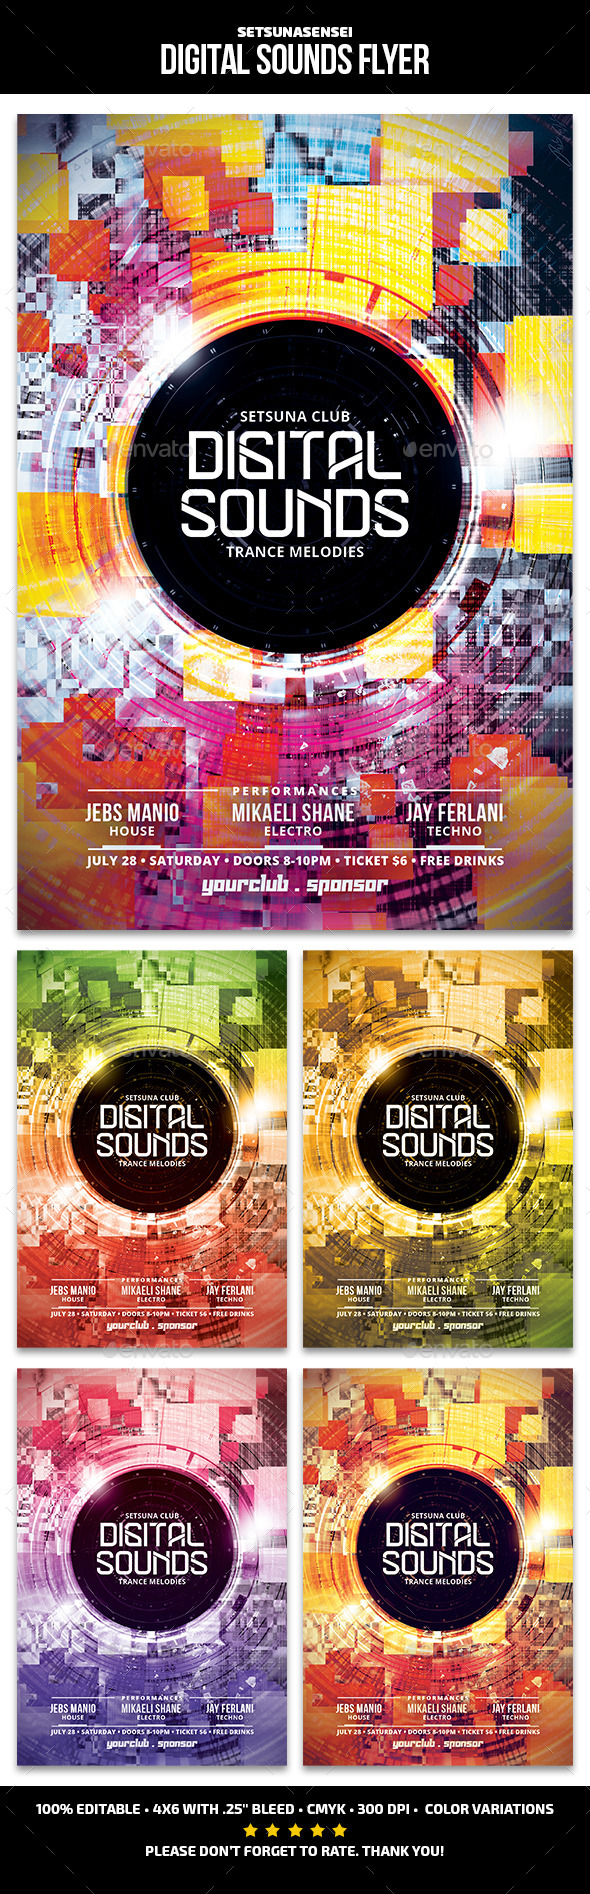 Digital Sounds Flyer - Clubs & Parties Events